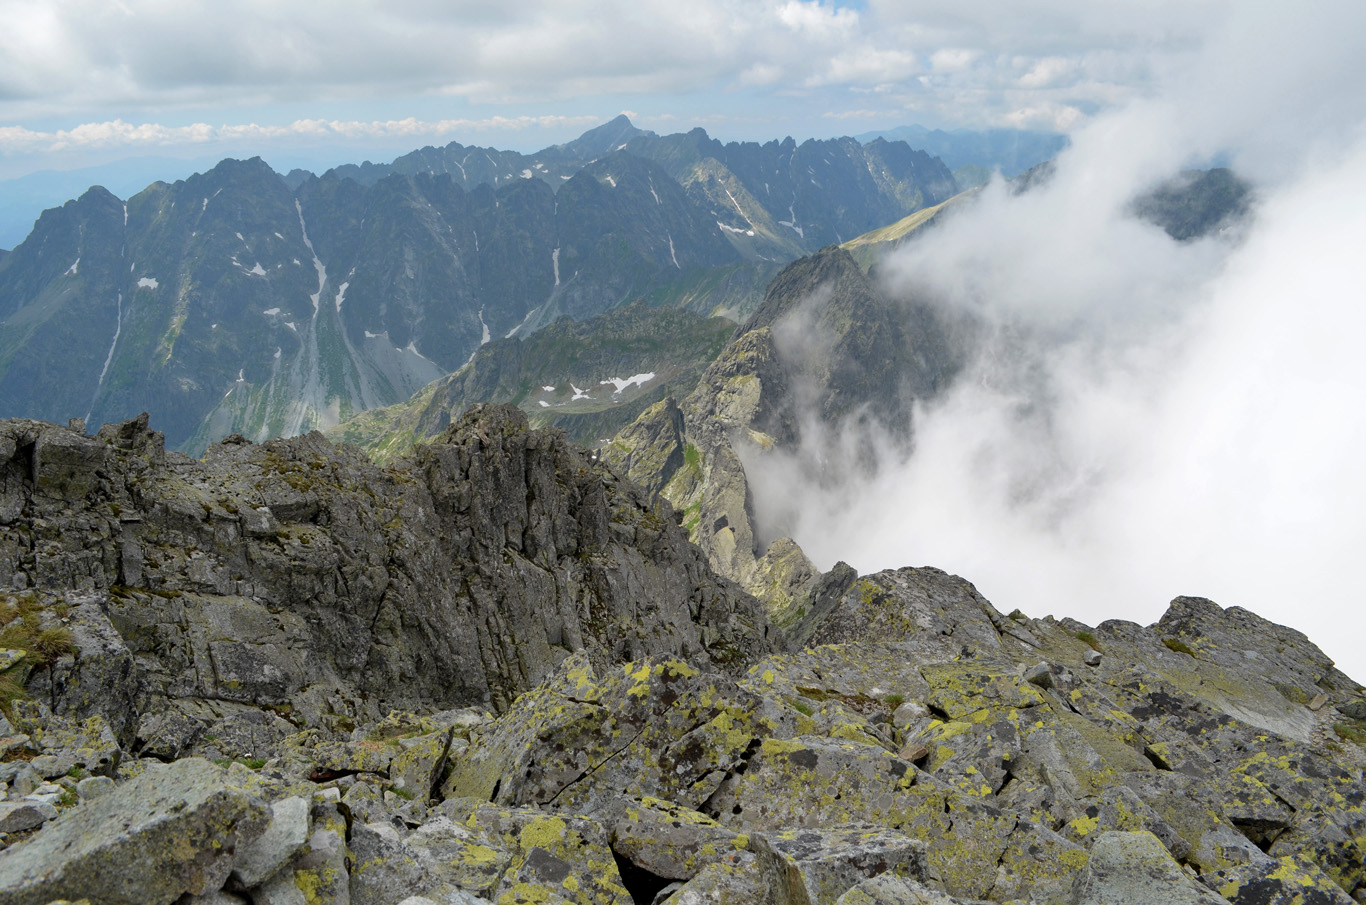 Slovakia - to the left and Poland, covered in clouds -to the right